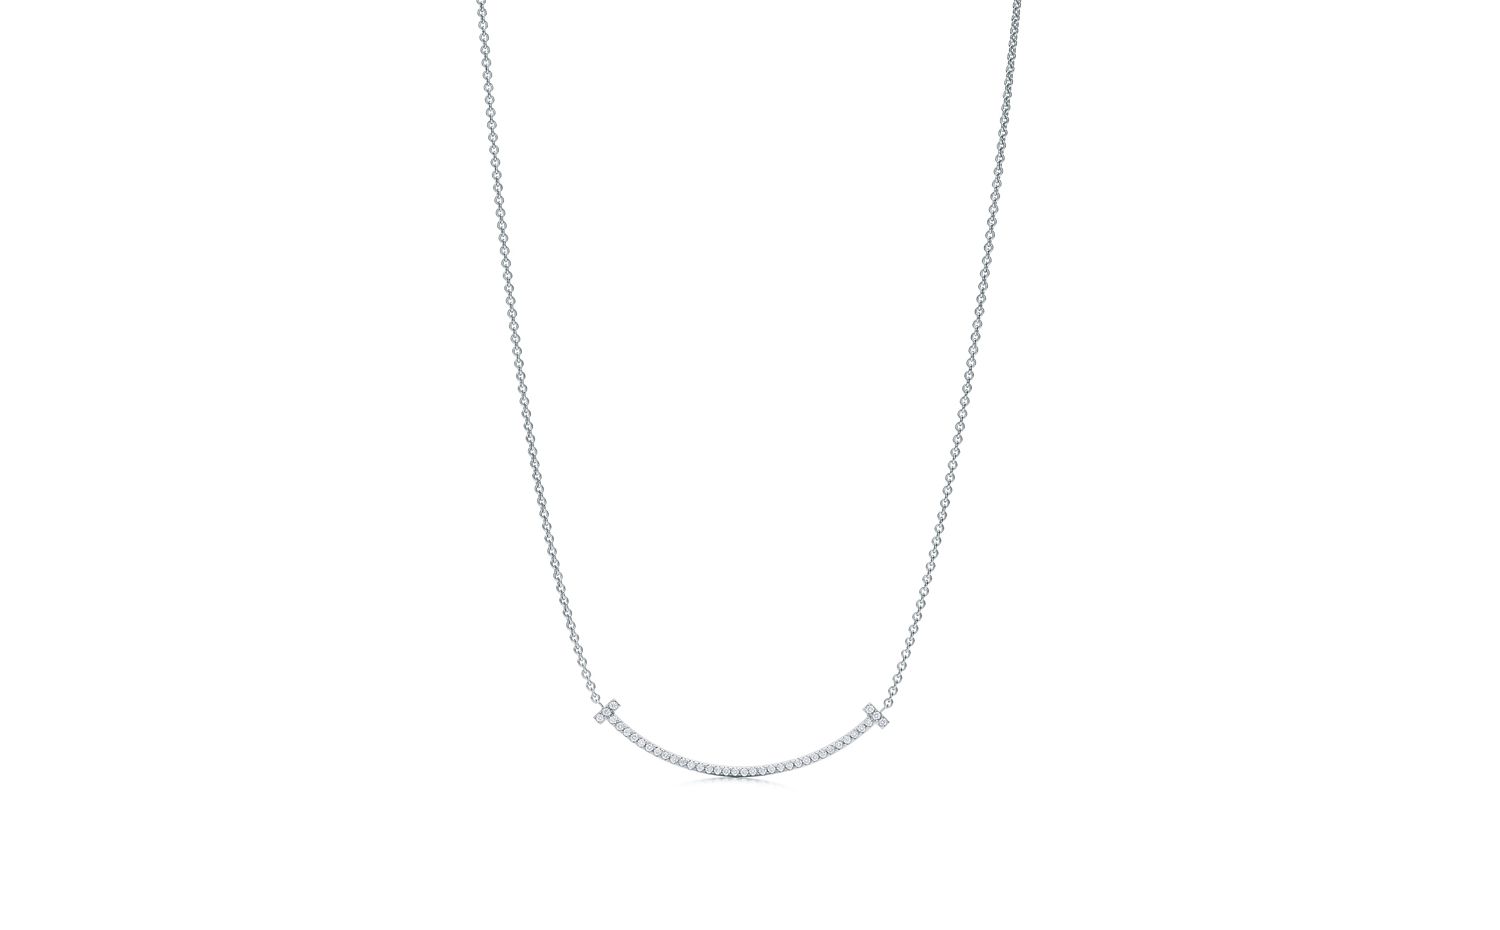 Tiffany T Smile Pendant in 18K White Gold - Mini